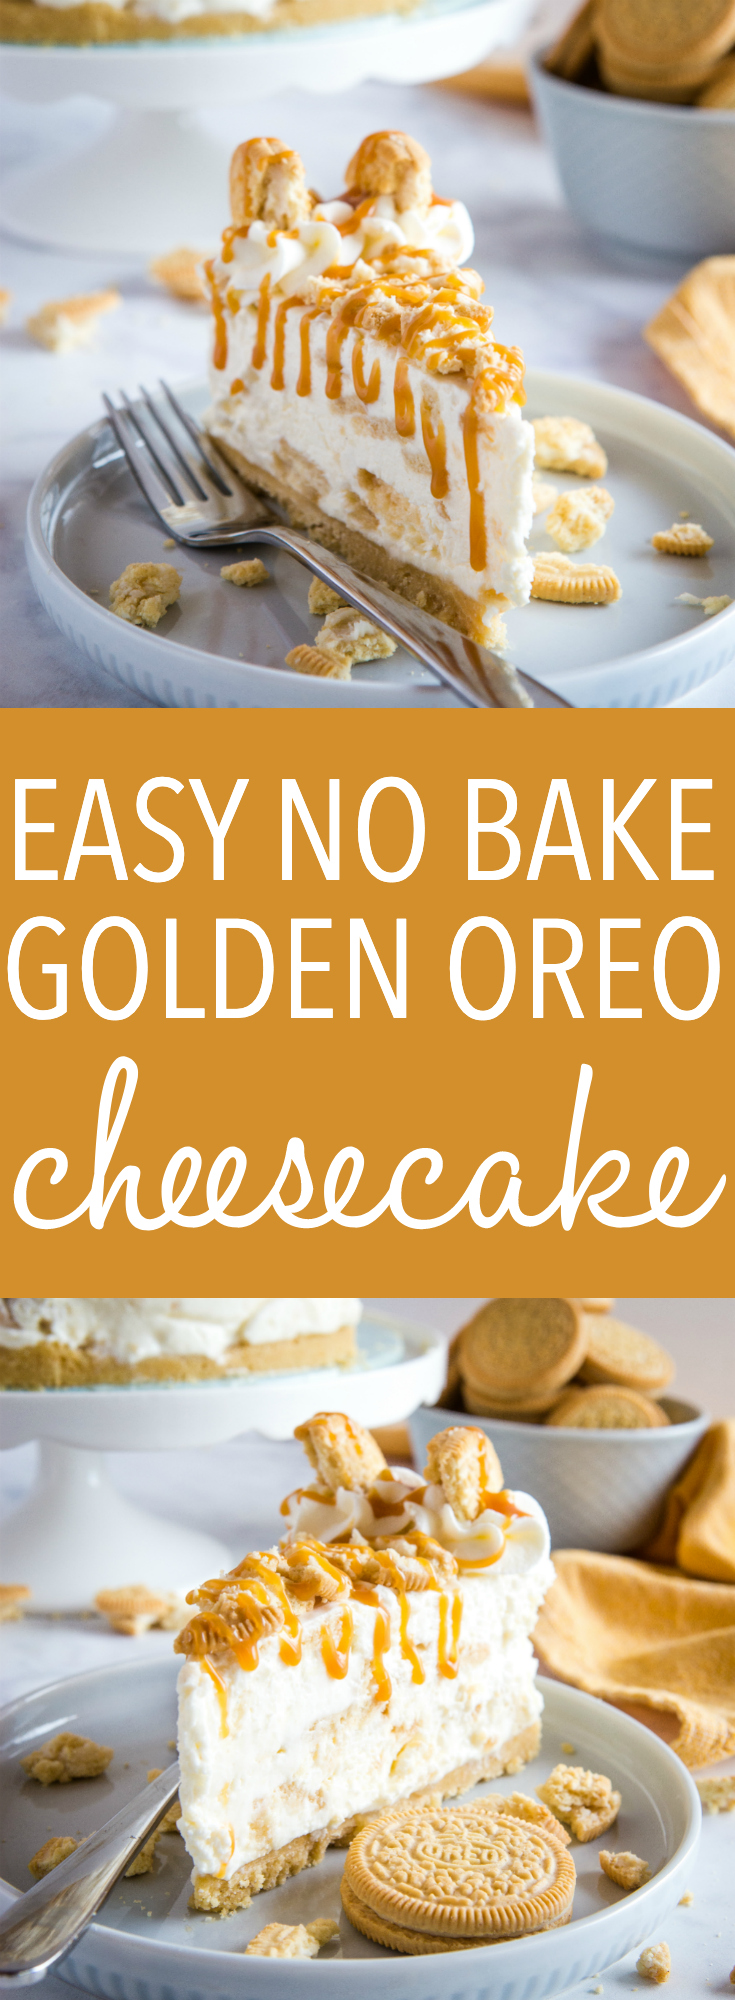 This Oreo cheesecake recipe makes a Golden Oreo cheesecake that's perfect for any occasion! Make this ultra creamy, perfectly sweet, no bake dessert! Recipe from thebusybaker.ca! #goldenoreo #cheesecake #nobake #dessert #sweet #treat #caramel #easytomake #simple #homemade via @busybakerblog